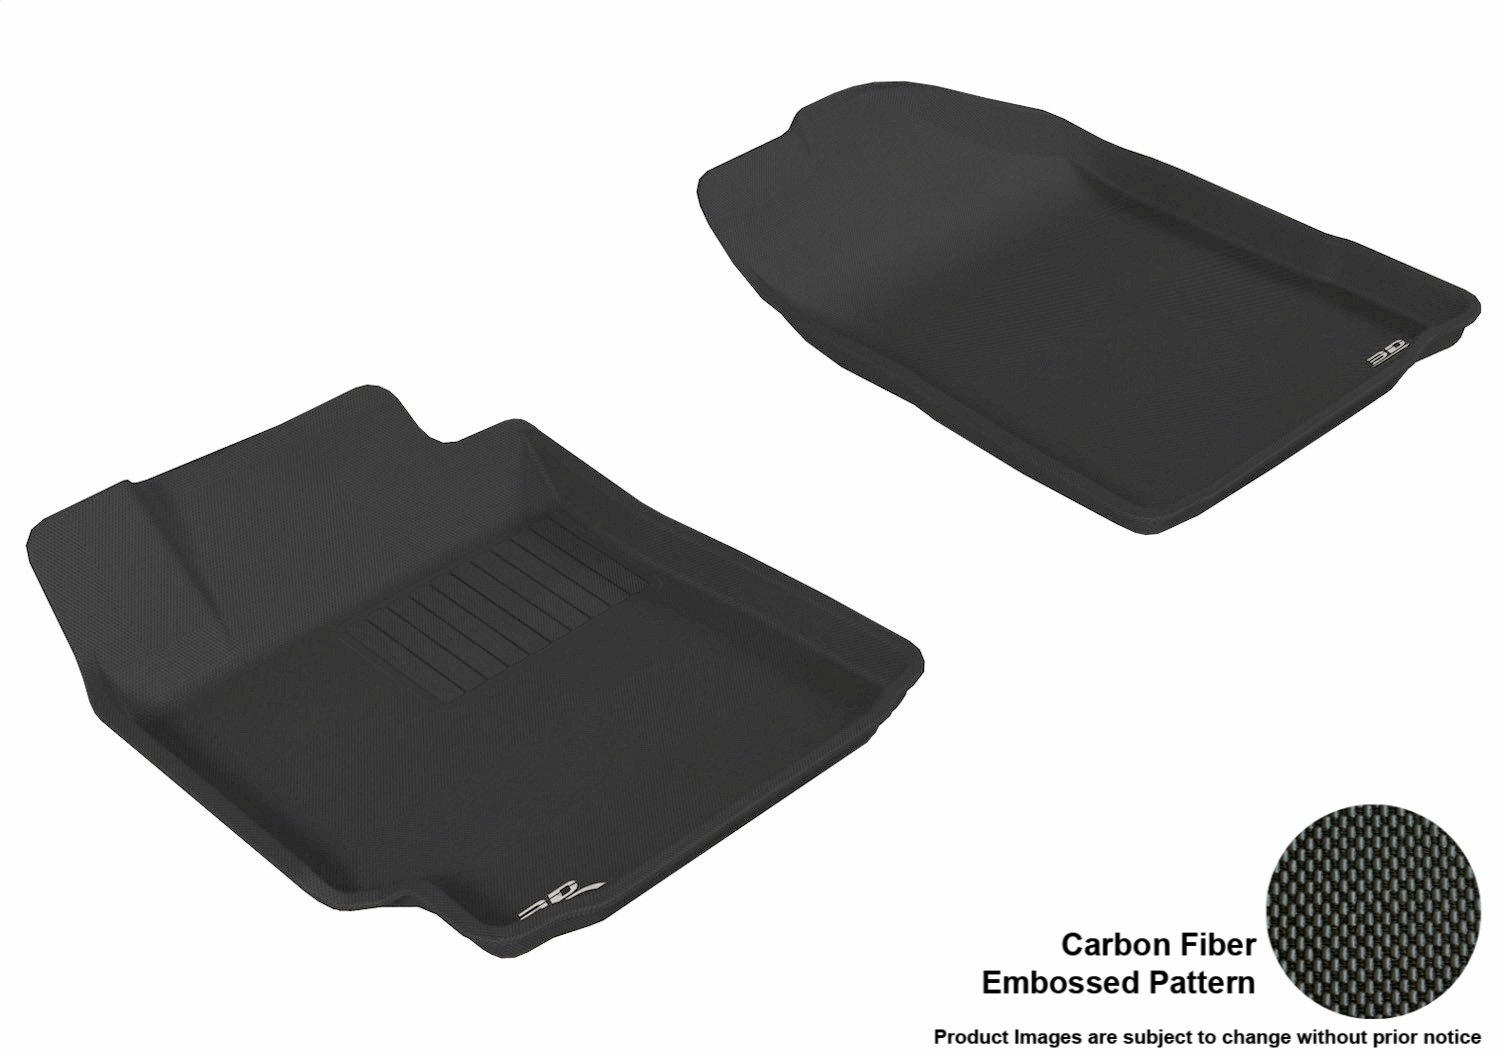 Black 3D MAXpider Complete Set Custom Fit All-Weather Floor Mat for Select Toyota Camry Models L1TY00401509 Kagu Rubber